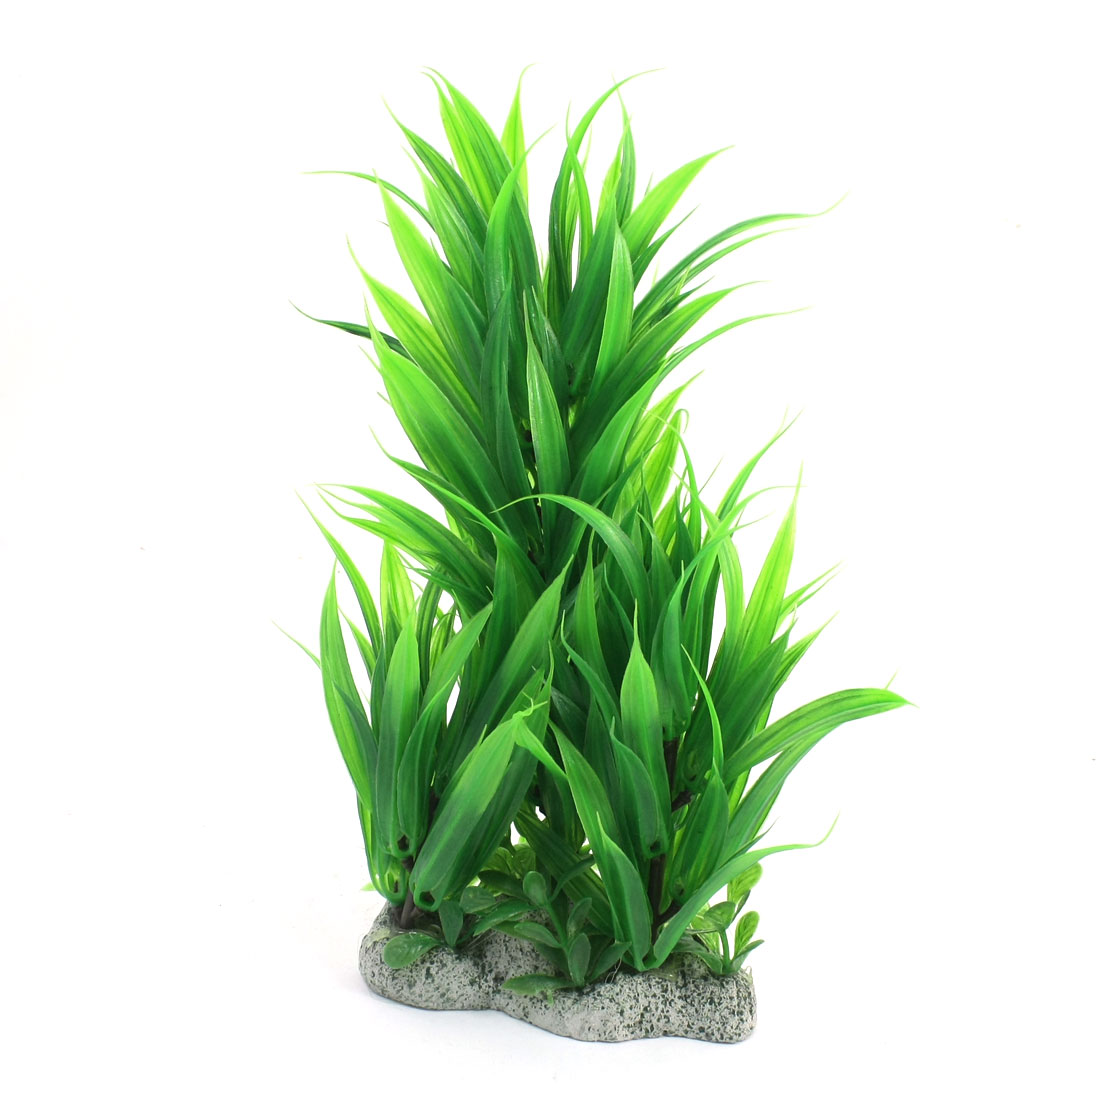 26cm Height Emulational Green Plastic Water Plant Glass for Fish Tank Aquarium Decor